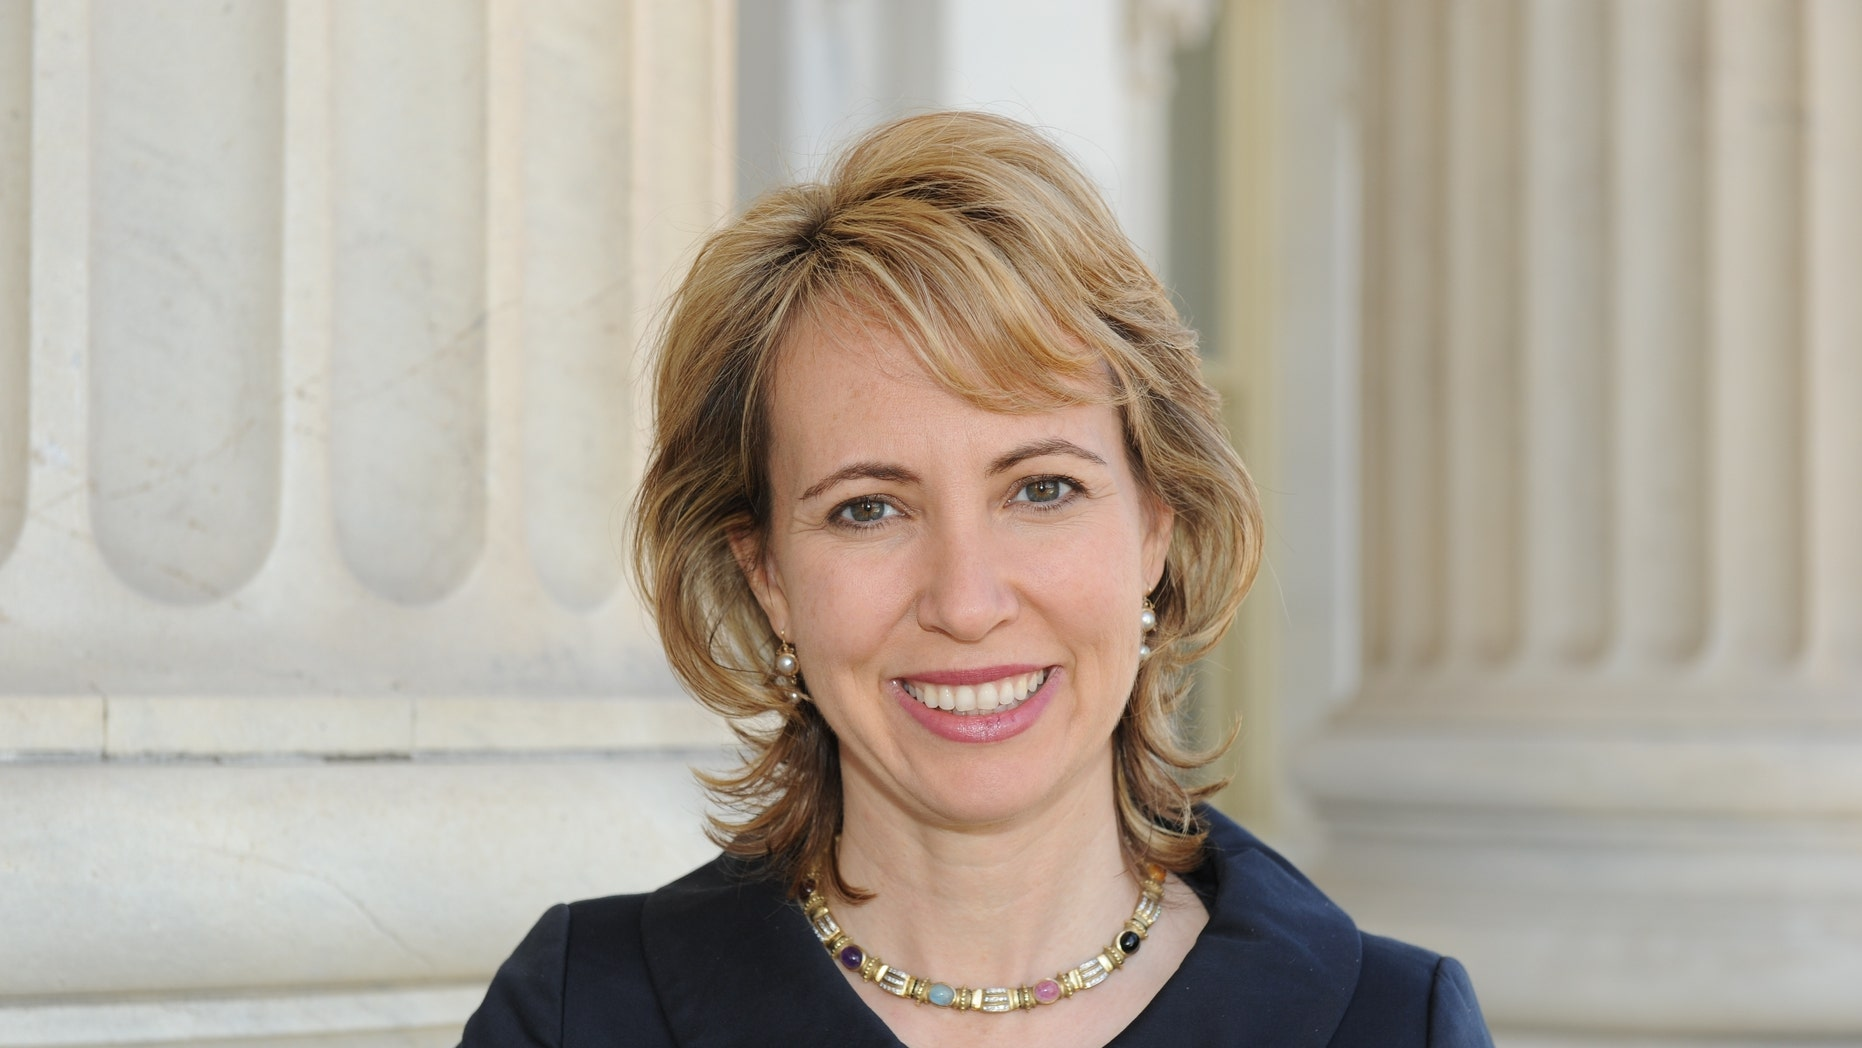 In this March, 2010 file photo, Rep. Gabrielle Giffords, Giffords poses for a photo. Giffords was critically wounded during a shooting at a political event Jan. 8 in Tucson, Ariz.